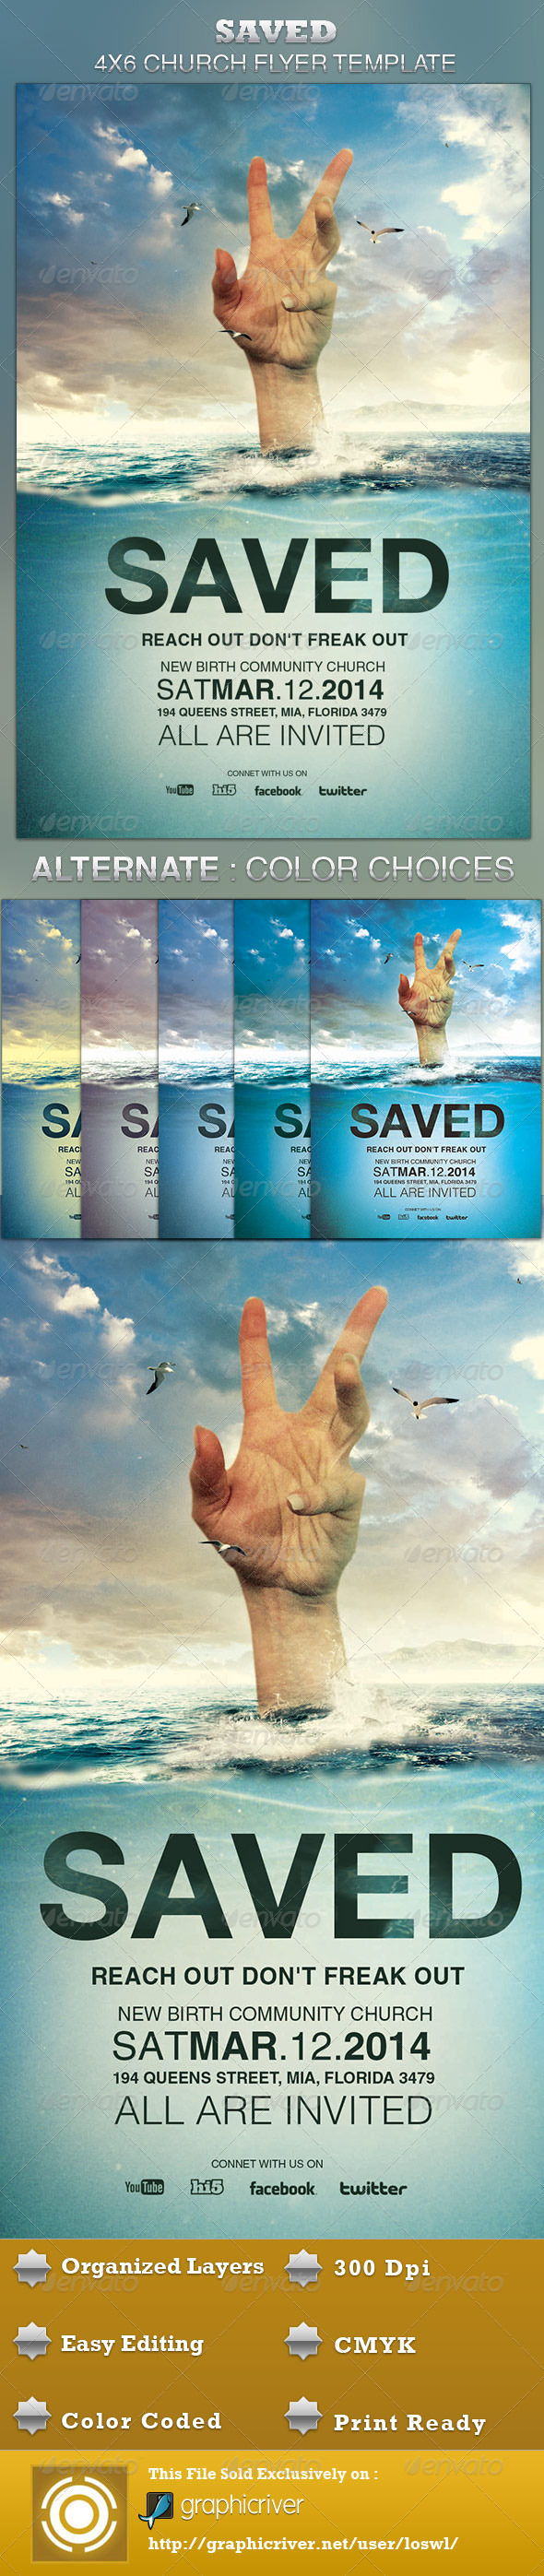 Saved Church Flyer Template - Church Flyers